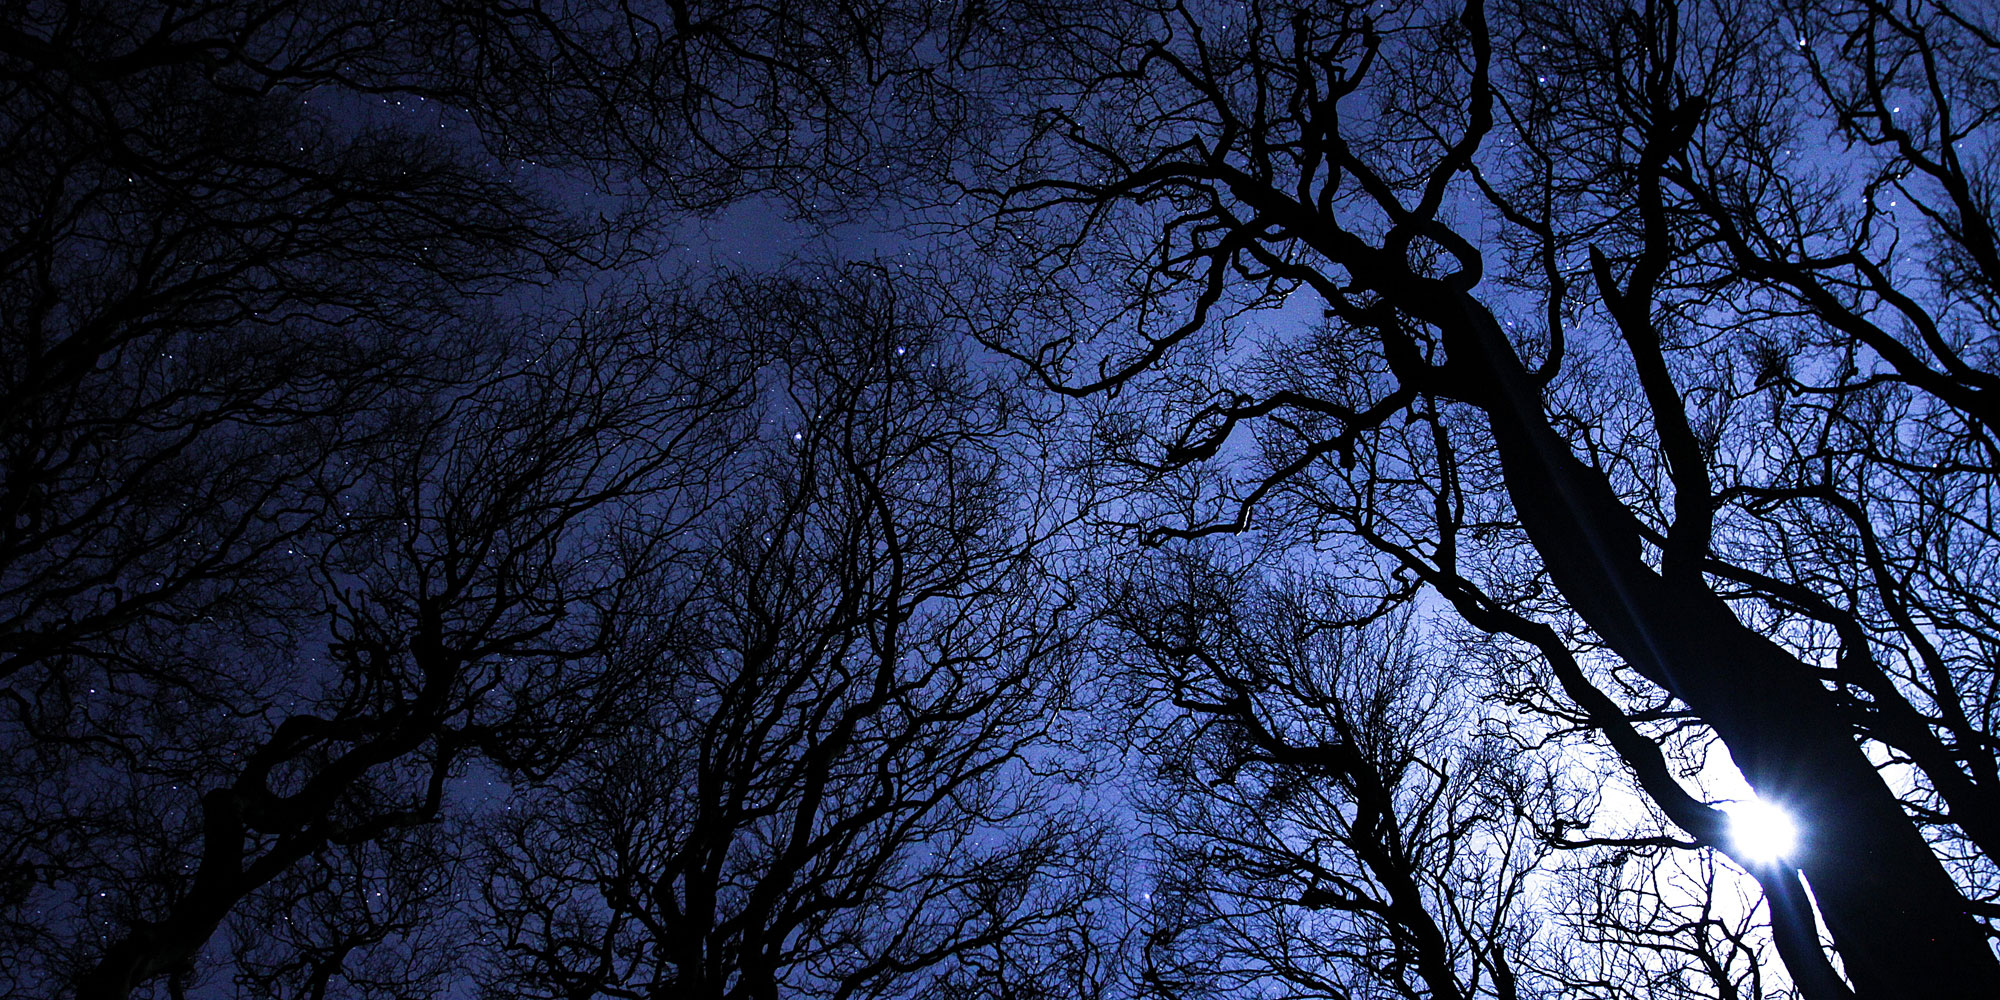 Night trees, stars and moon